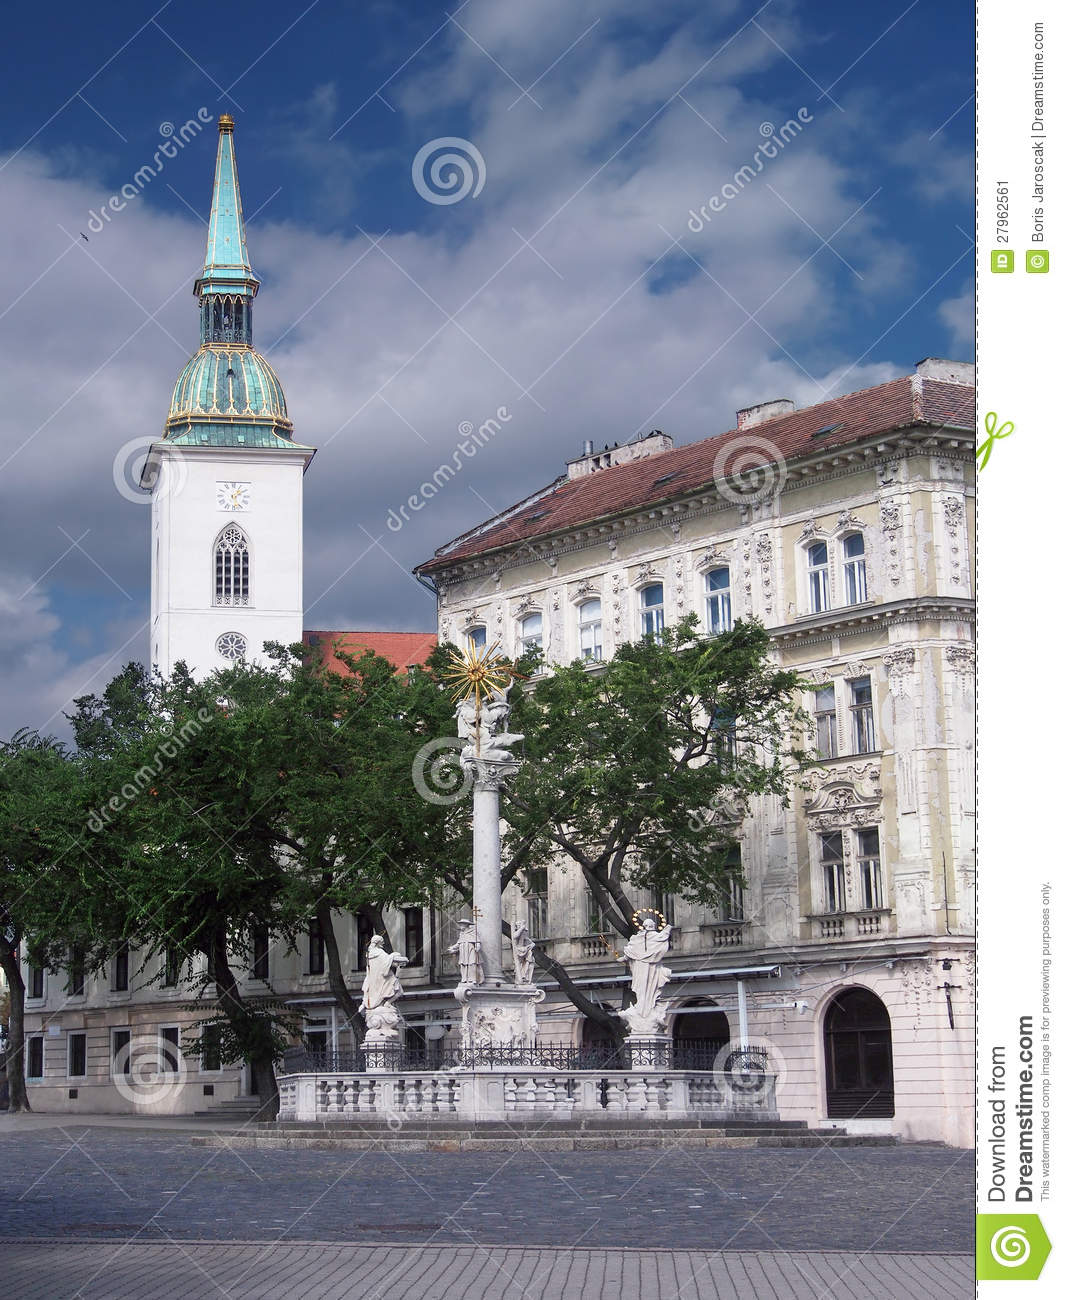 Plague column and cathedral in Bratislava